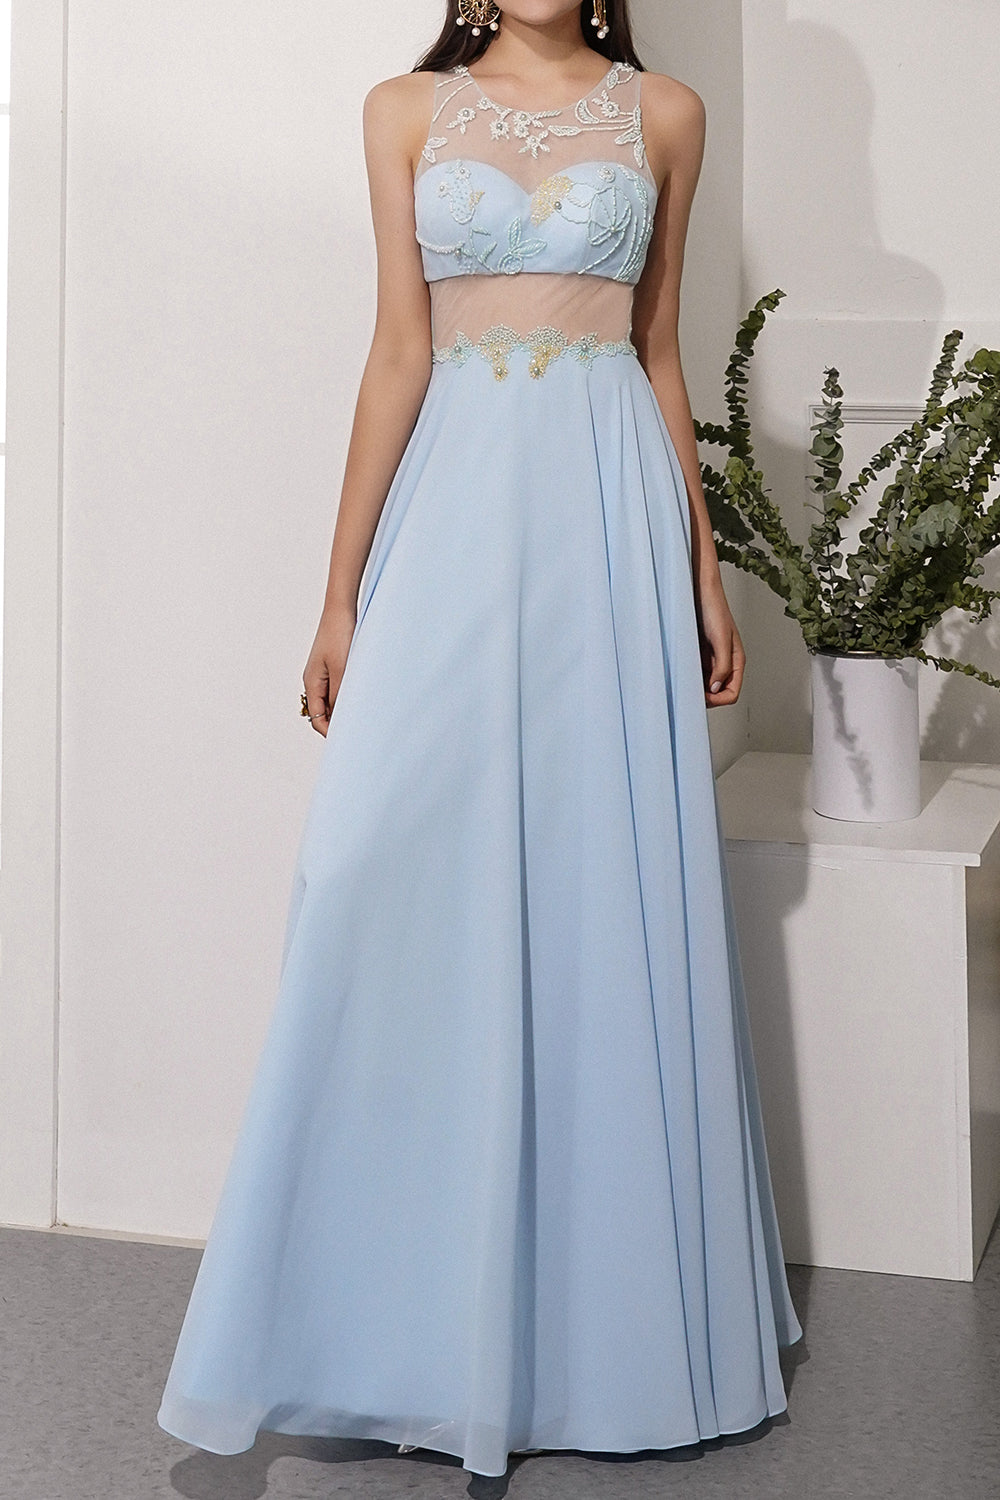 Blue A Line Chiffon Prom Dress With Appliques